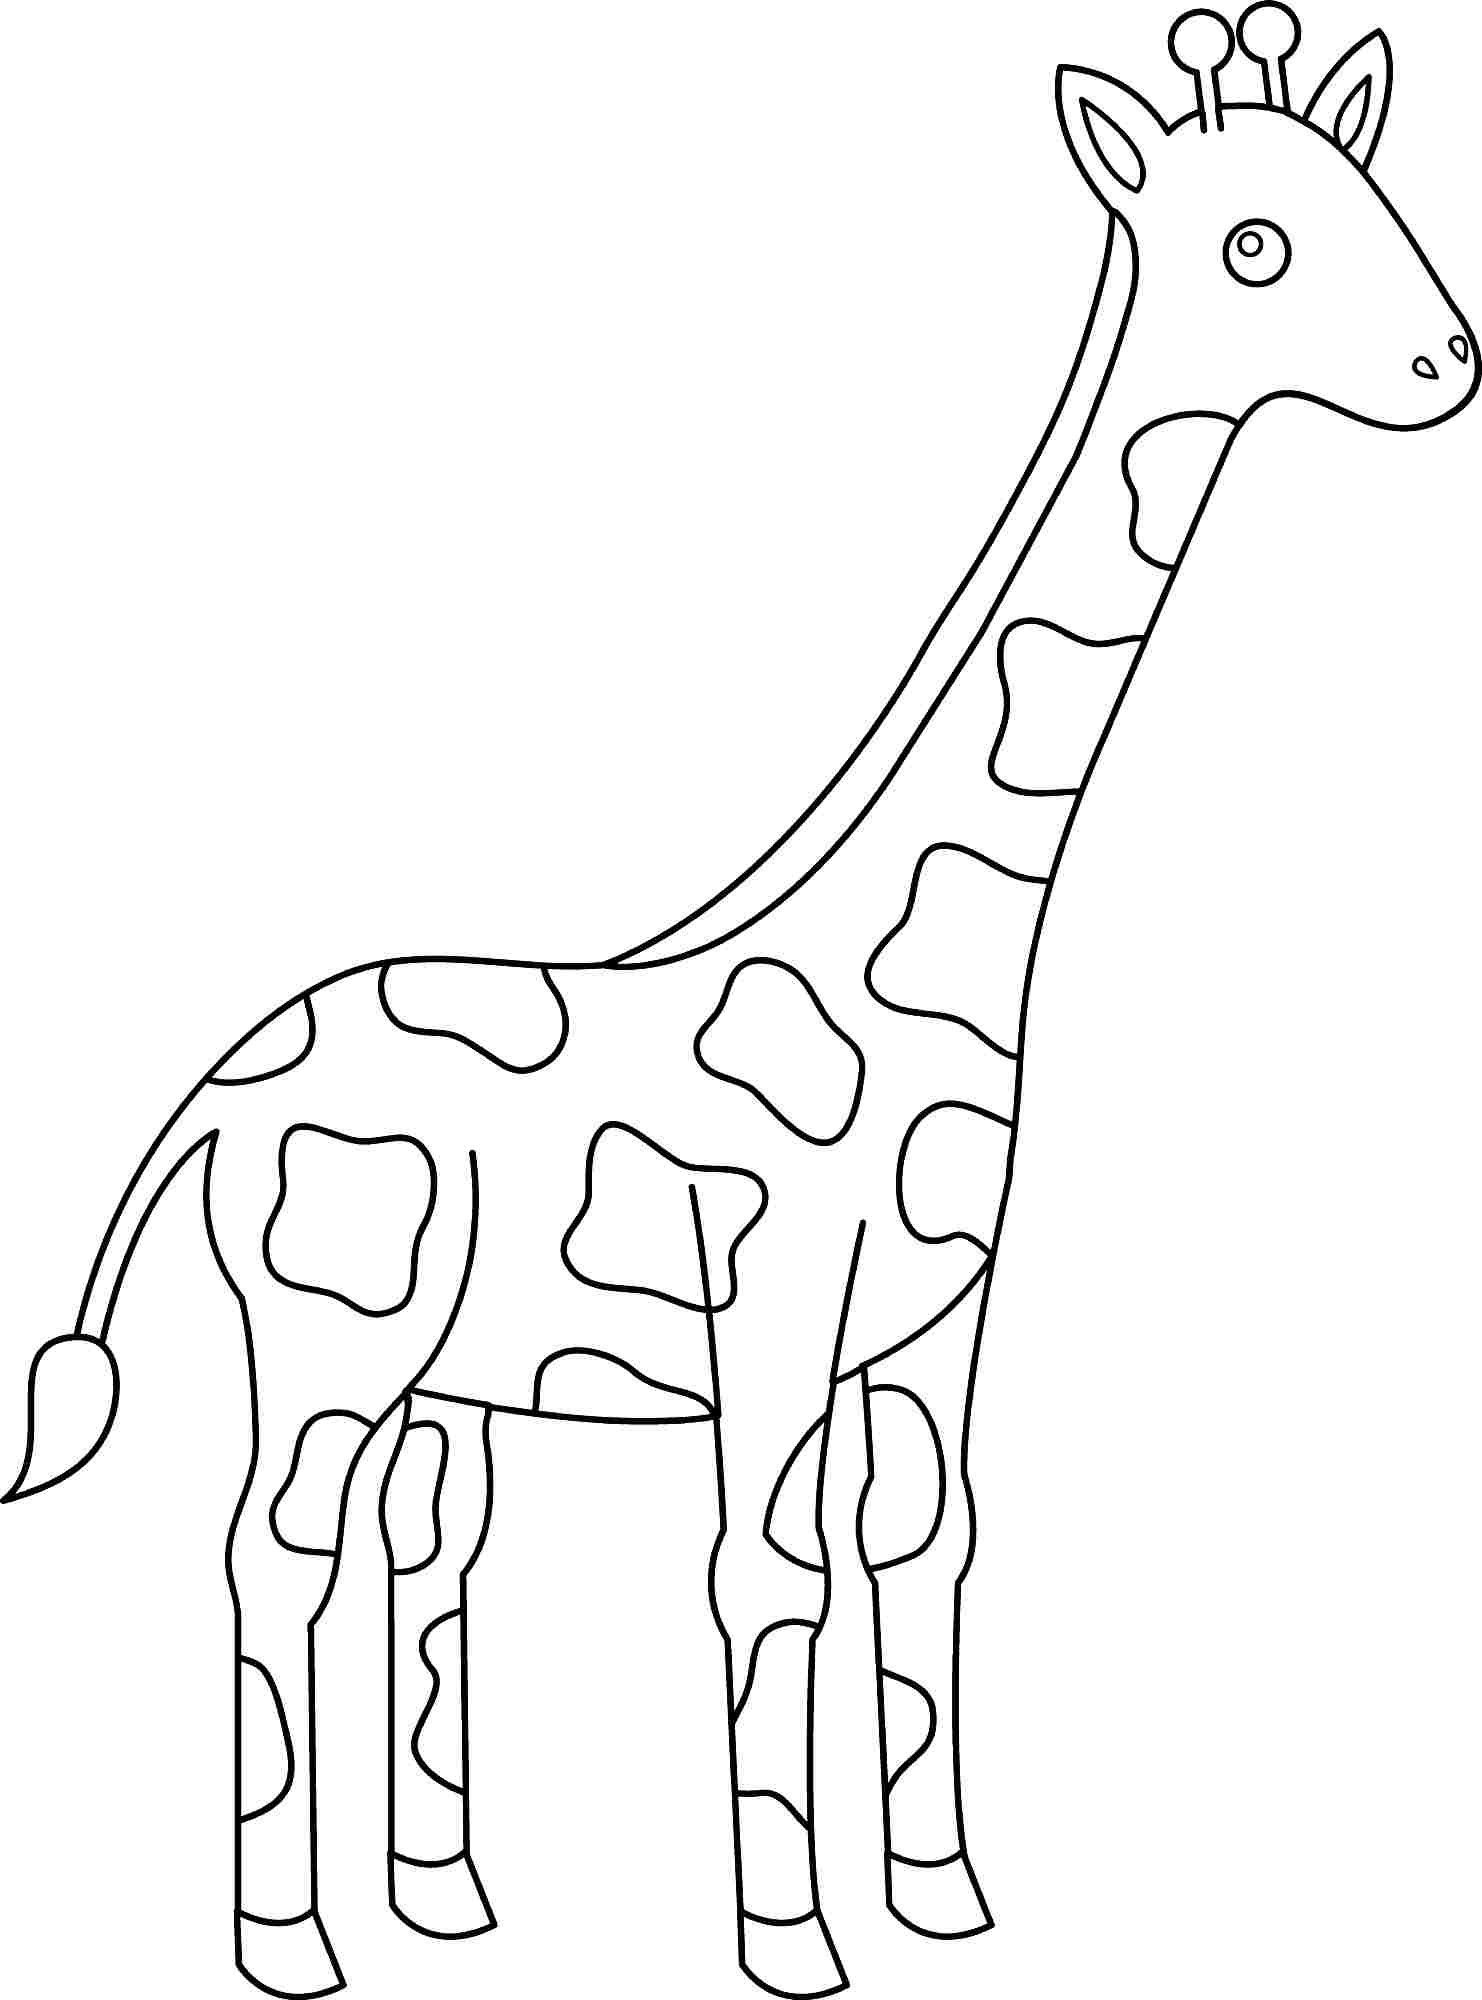 Cute Giraffe Coloring Pages Pdf Printable Free Coloring Sheets